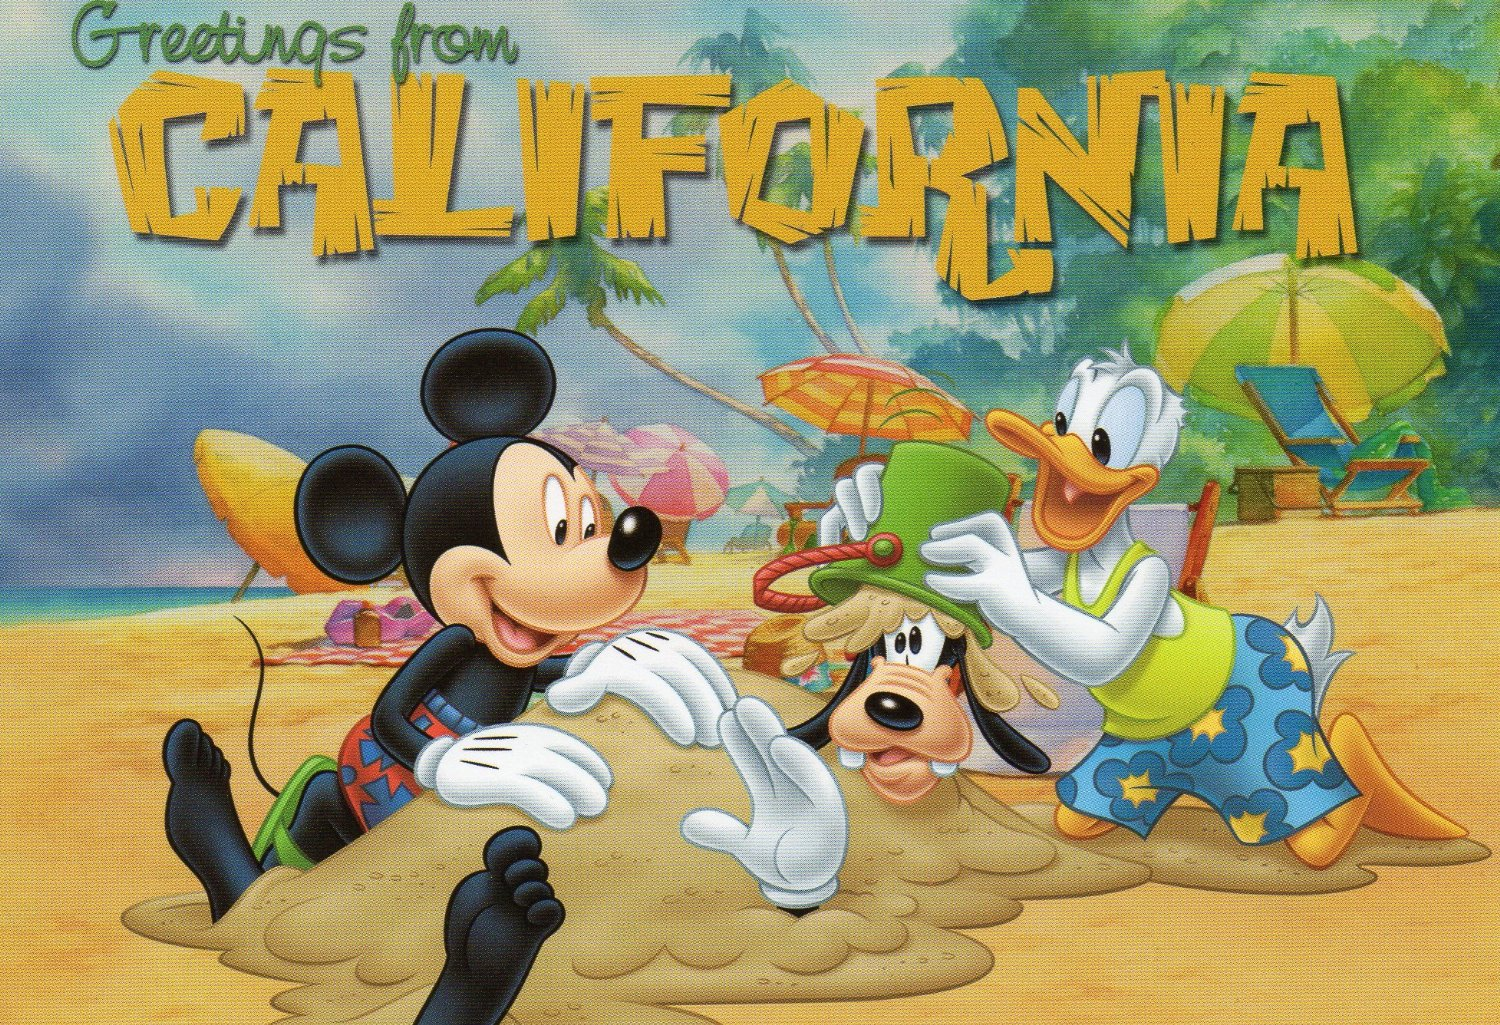 Buy cheap fast greeting cards postcards of hibiscus express usa xxxx out of stock more postcards at httphibiscusexpress postcards xxxxx 439 greetings from california postcard disney california pc57 wd cal m4hsunfo